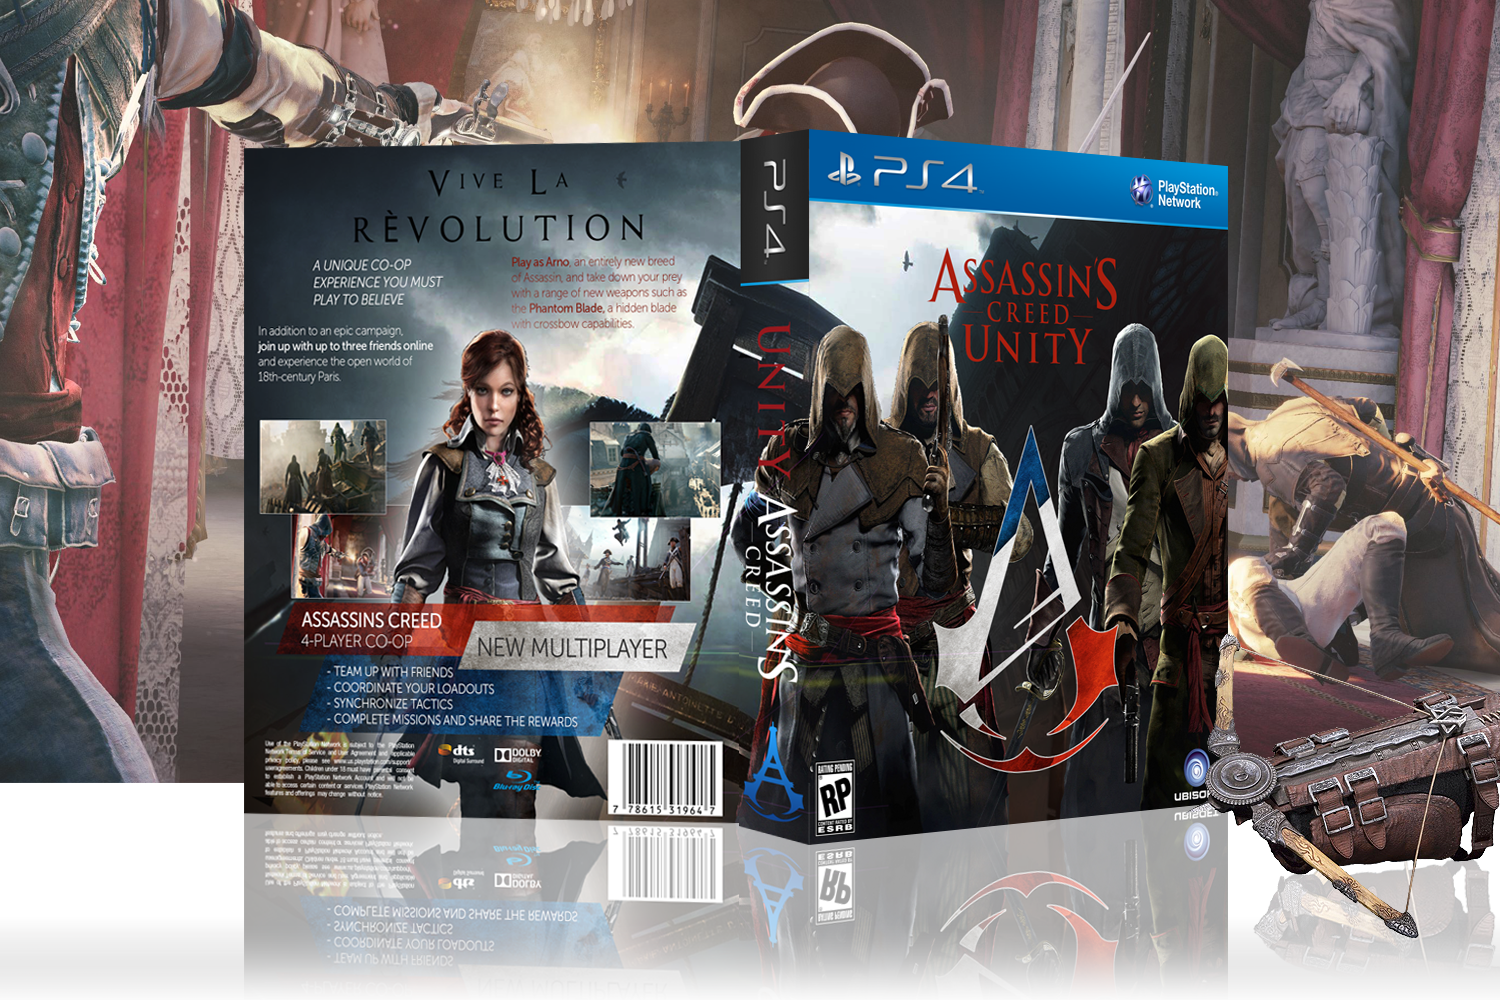 Assassin's Creed Unity PlayStation 4 Box Art Cover by